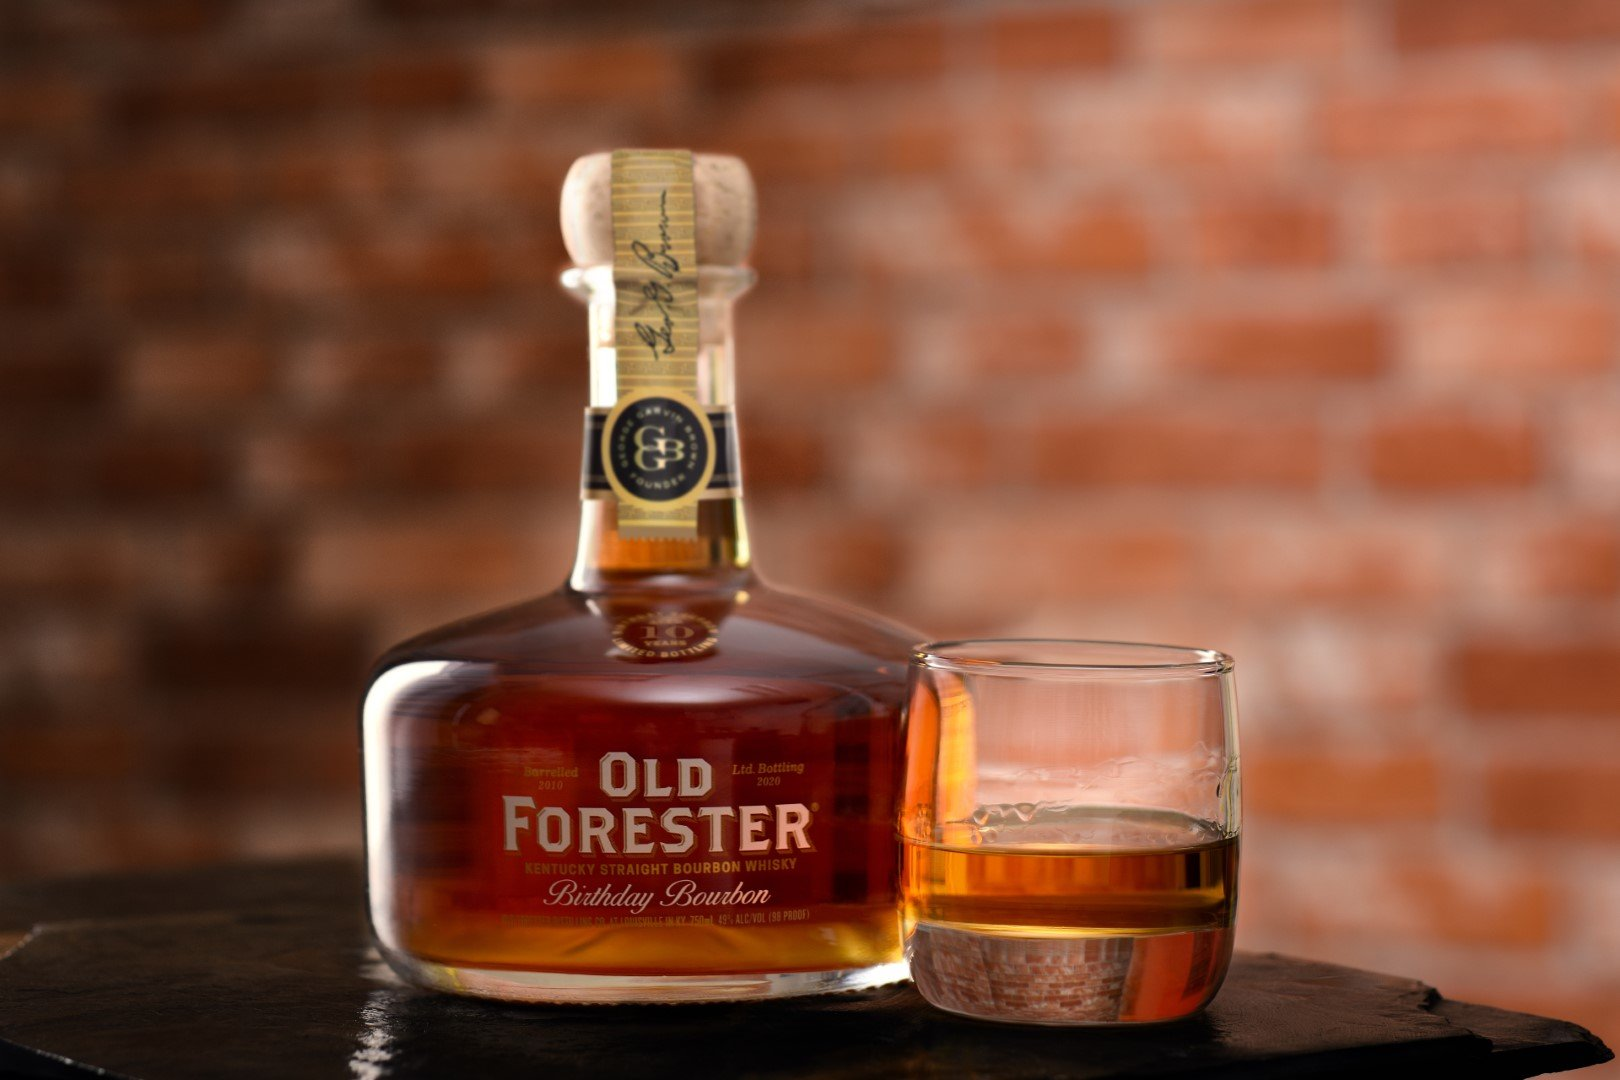 Old Forester Birthday Bourbon 2020 Edition